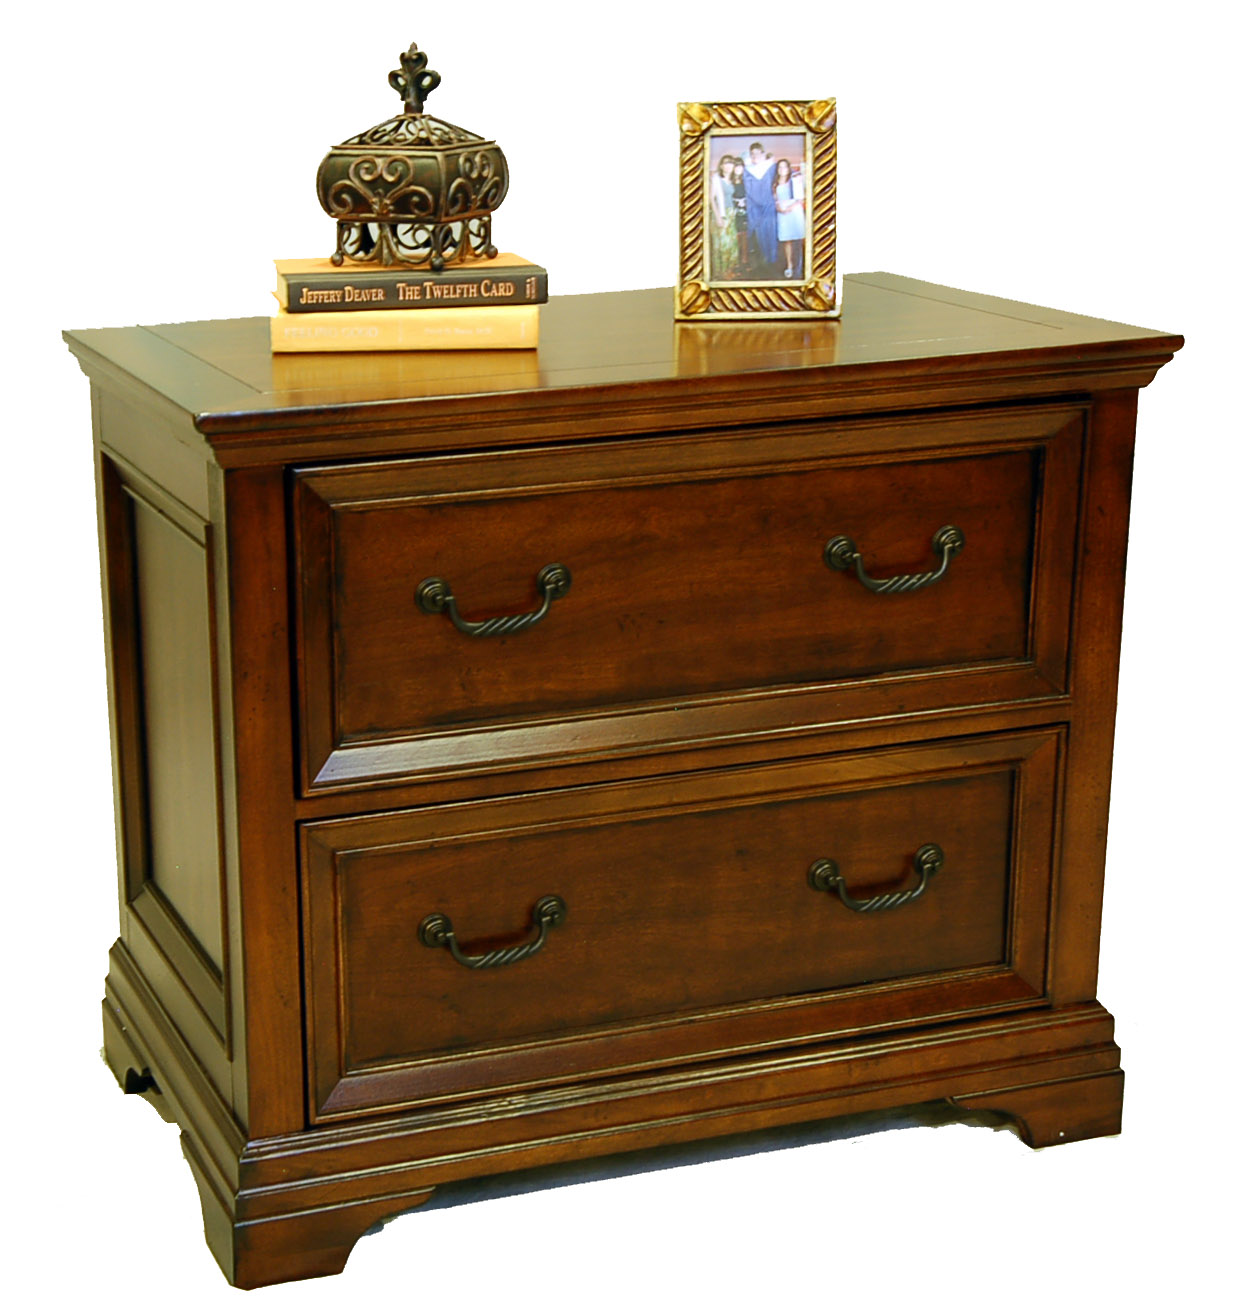 Bail Pulls For Furniture Details about Wood Traditional Cherry Locking Lateral File Cabinet